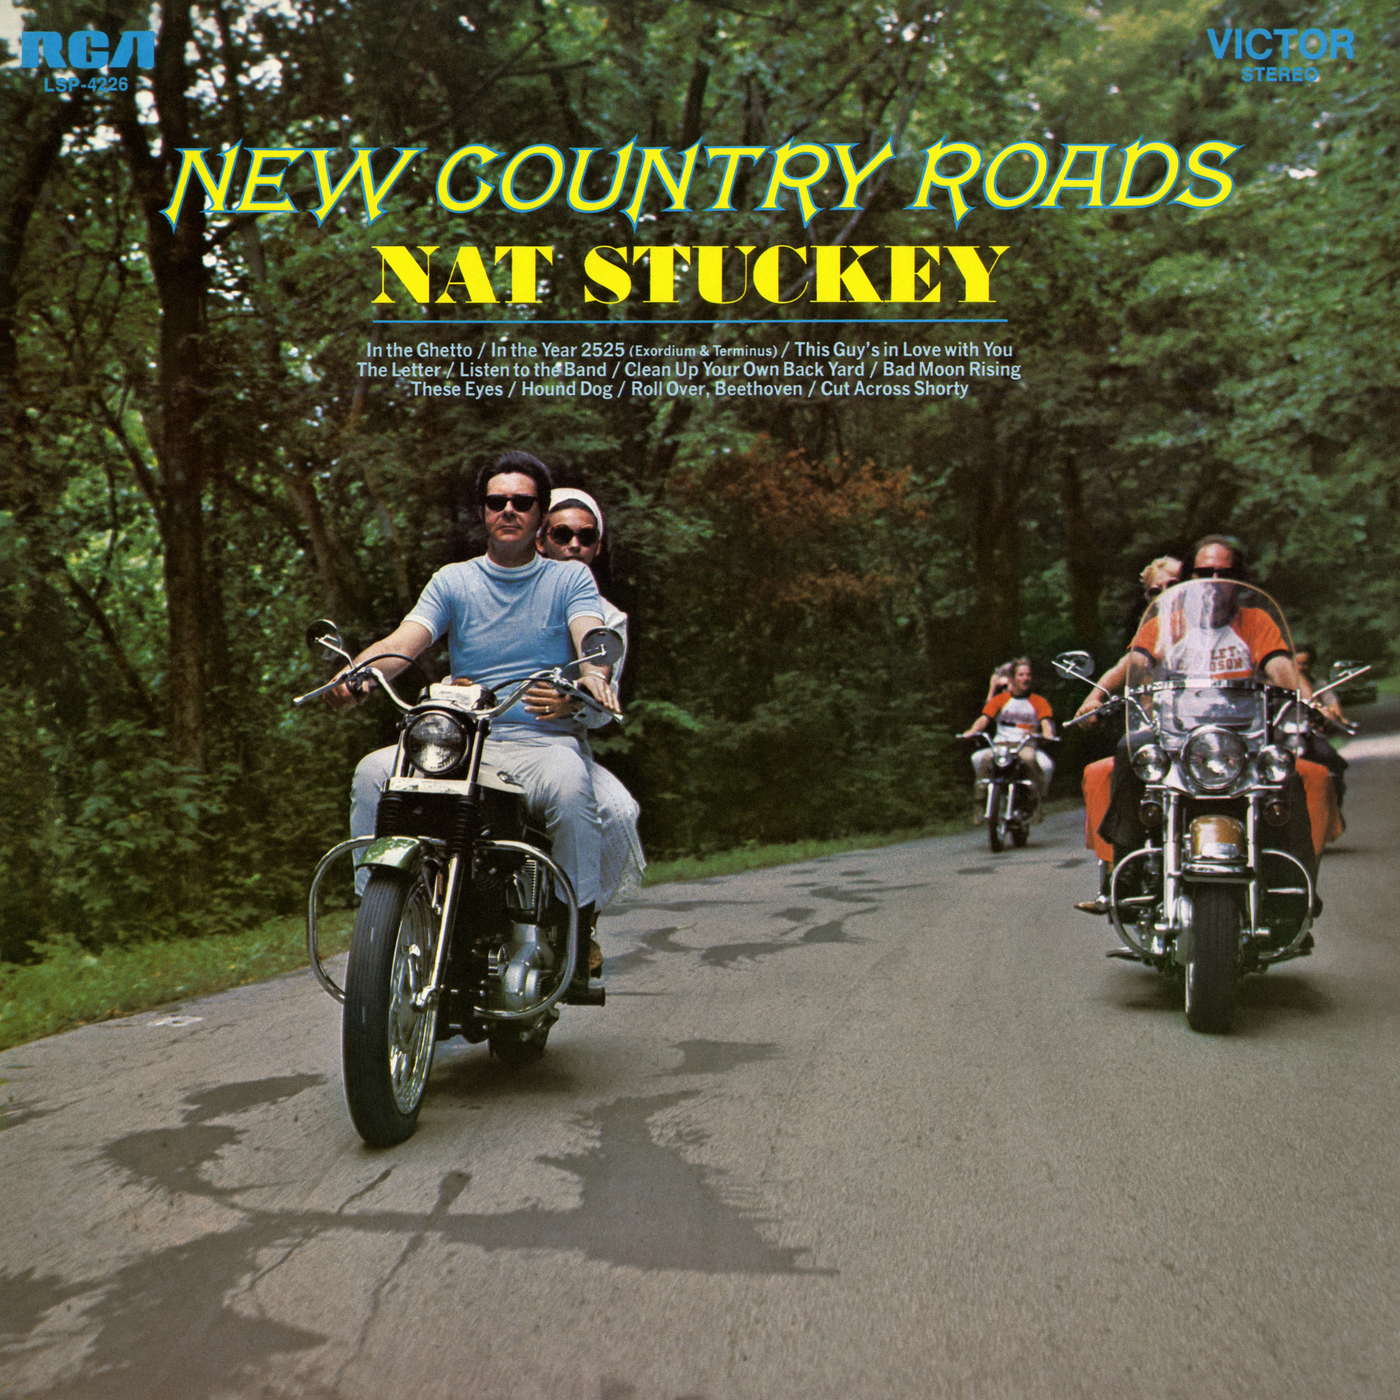 New Country Roads - Nat Stuckey